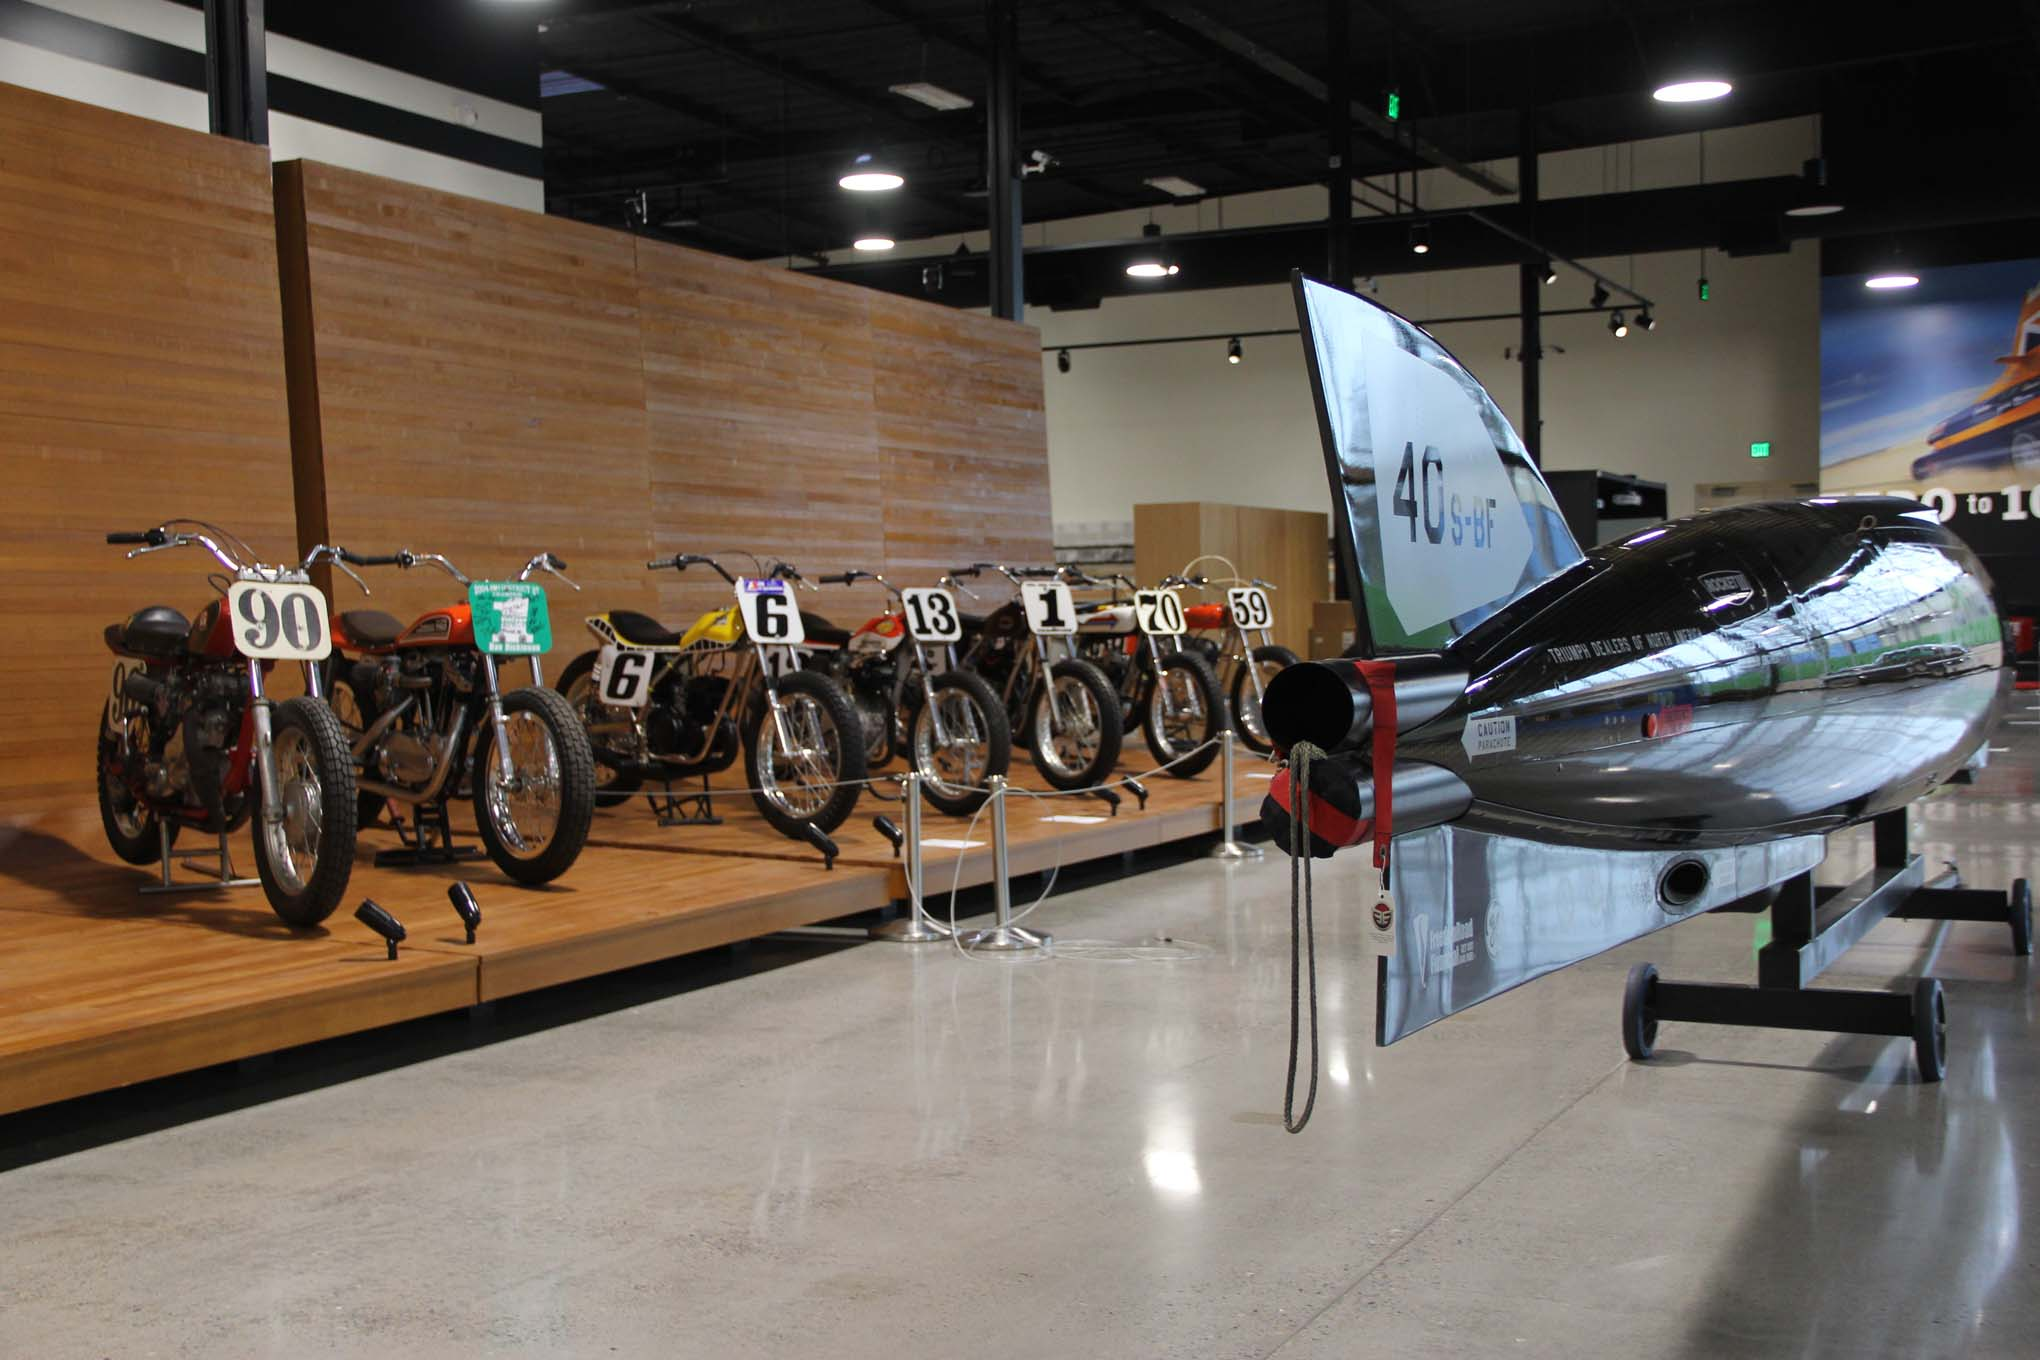 This is just a portion of the motorcycle display, which includes the Triumph-powered Castrol Rocket at the right, which is currently seeking to break the Fédération Internationale de Motocyclisme (FIM) world land-speed record in the motorcycle class.